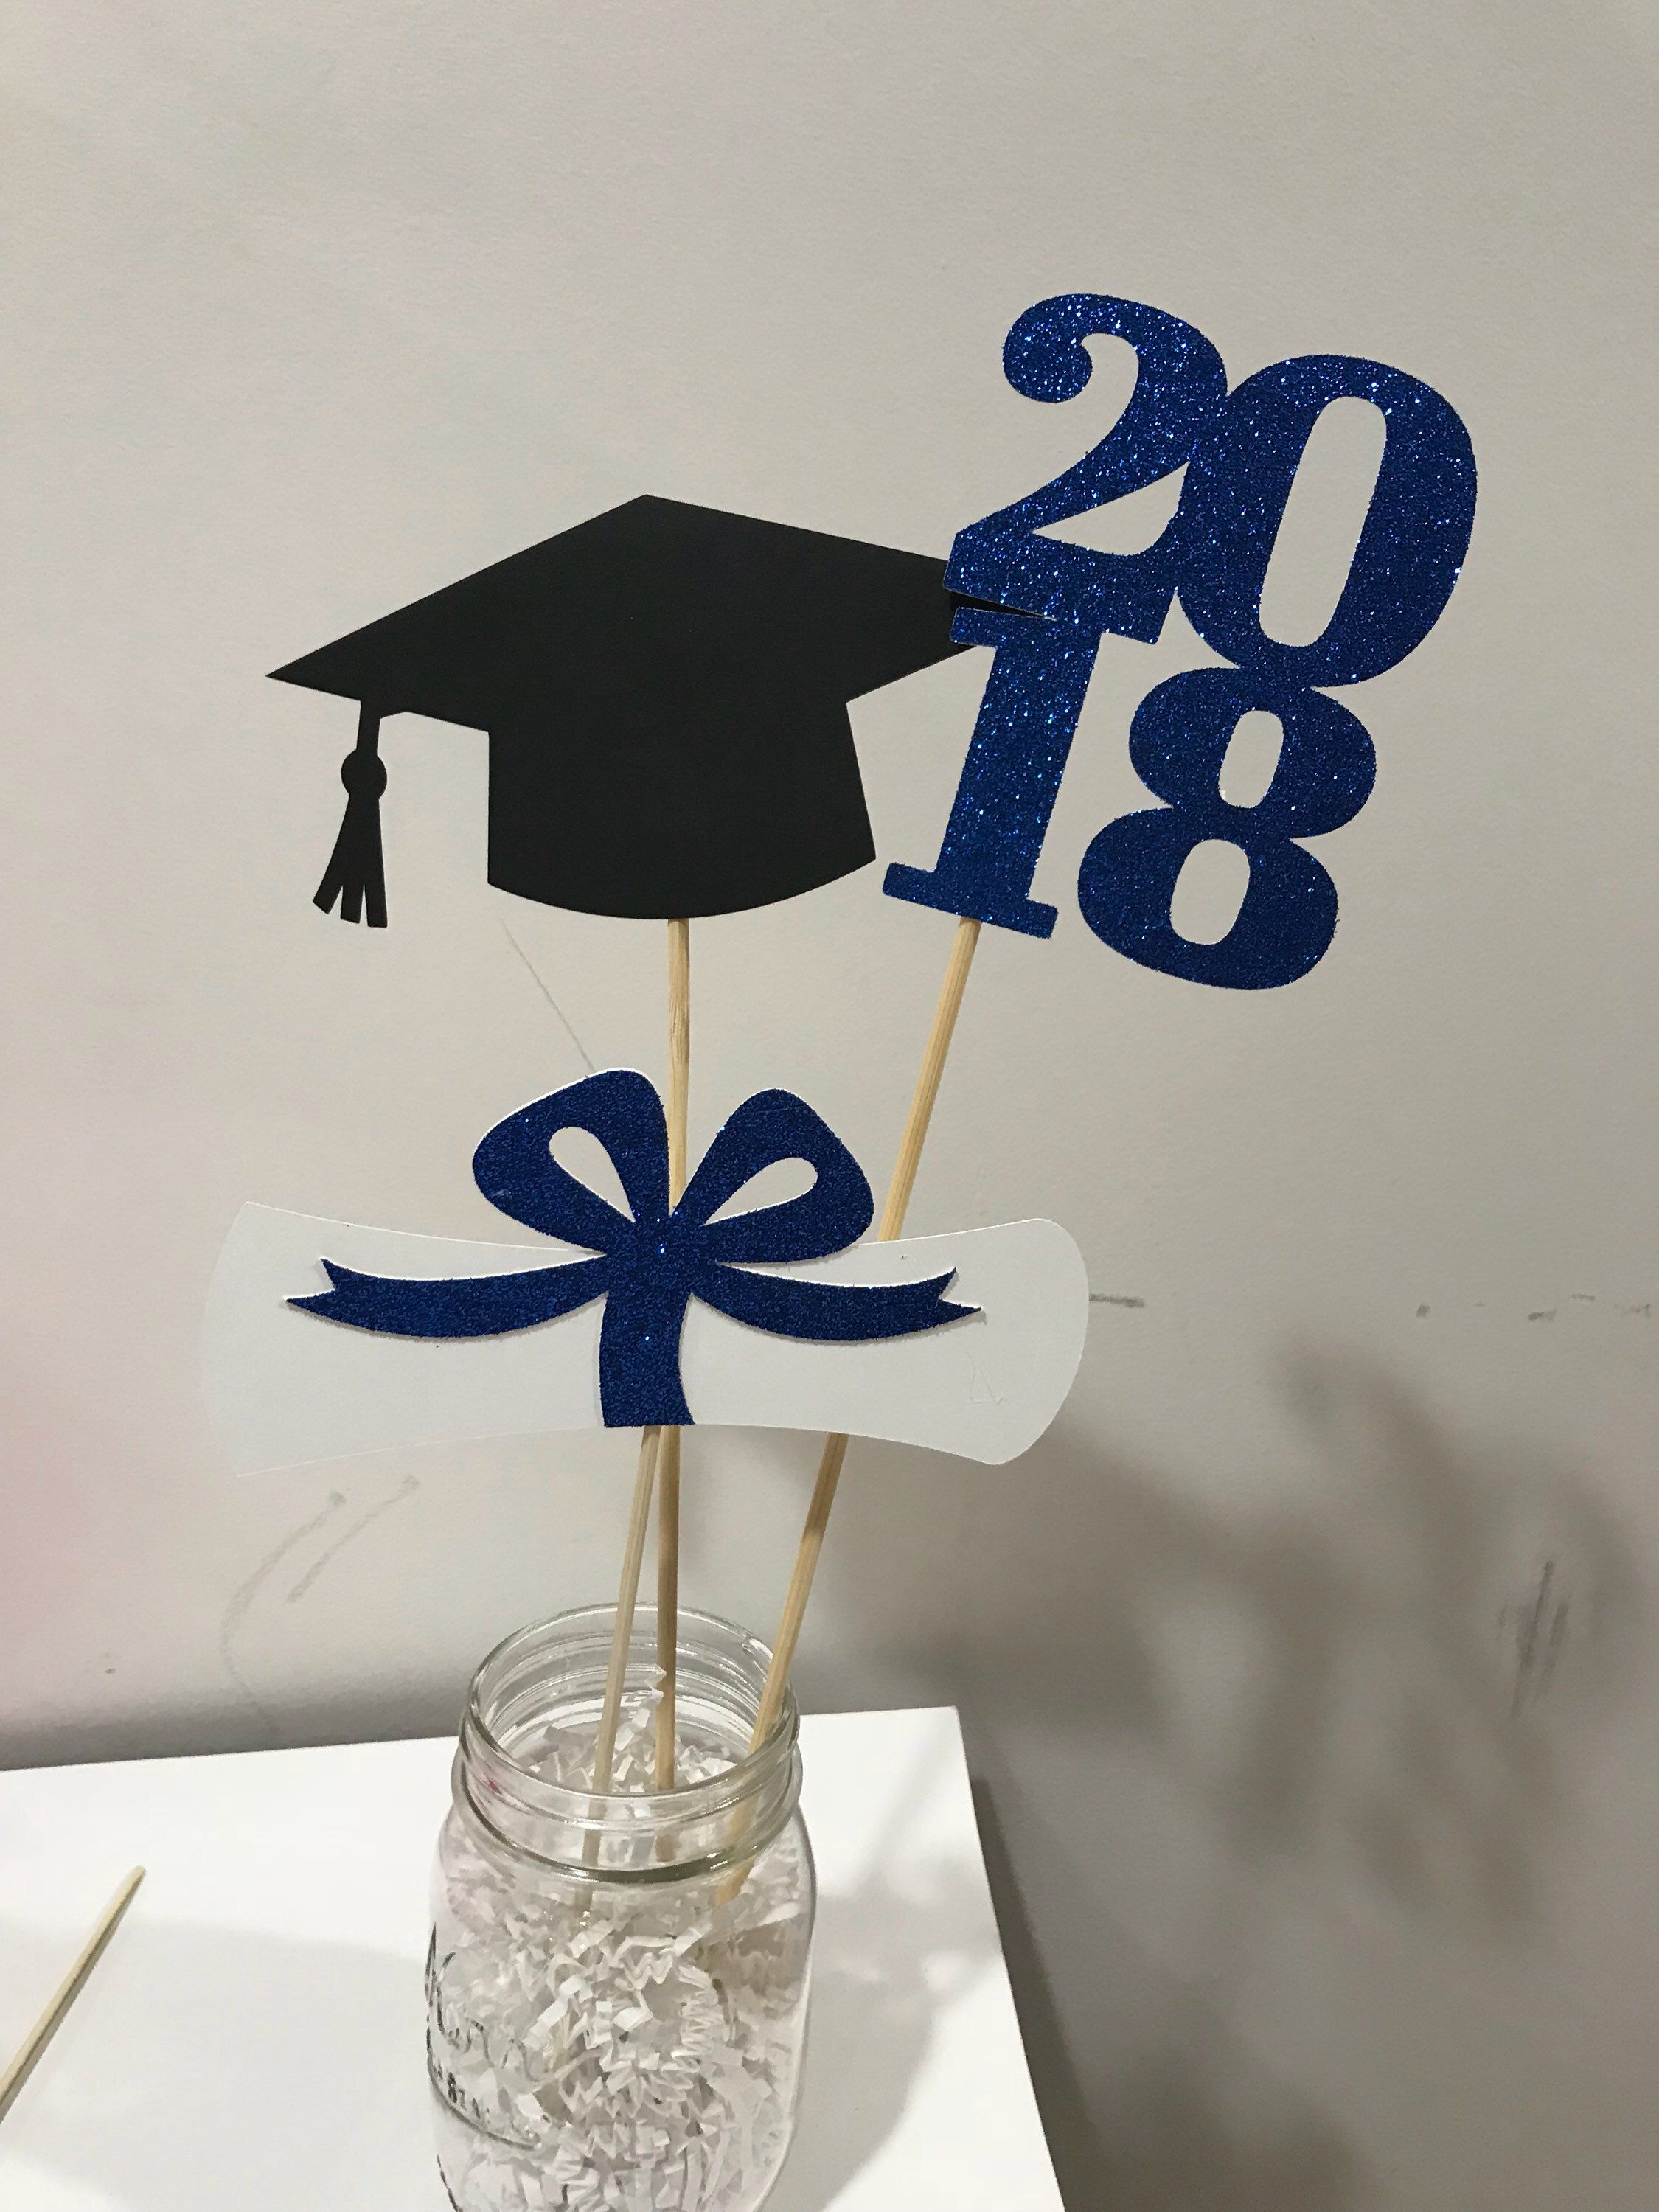 Graduation party decorations centerpiece